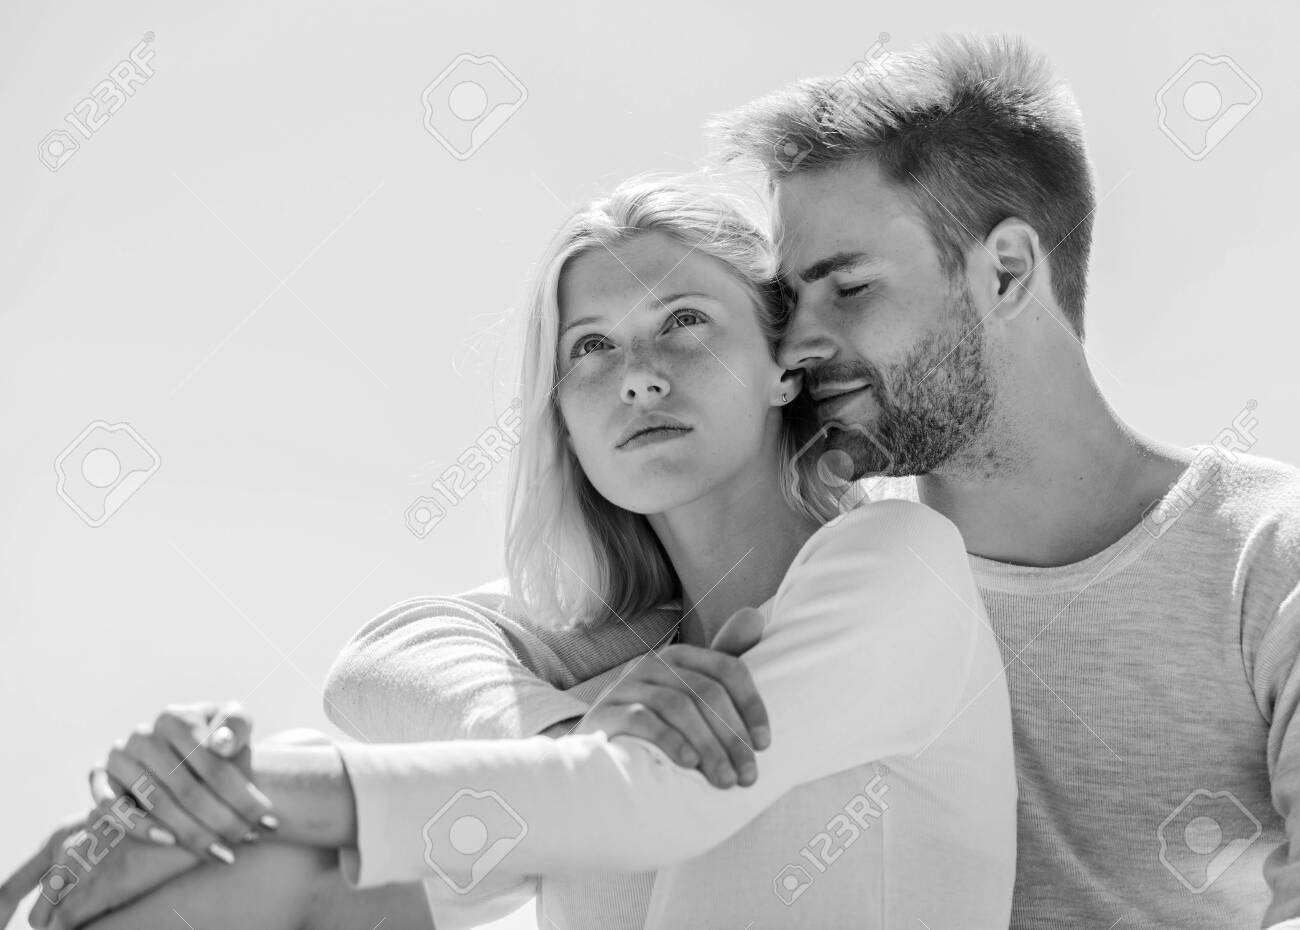 Being in love. understanding and support. romantic relationship. couple in love. married in heaven. man and girl smiling. he make her happy. happy to be together. they love each other - 142161751